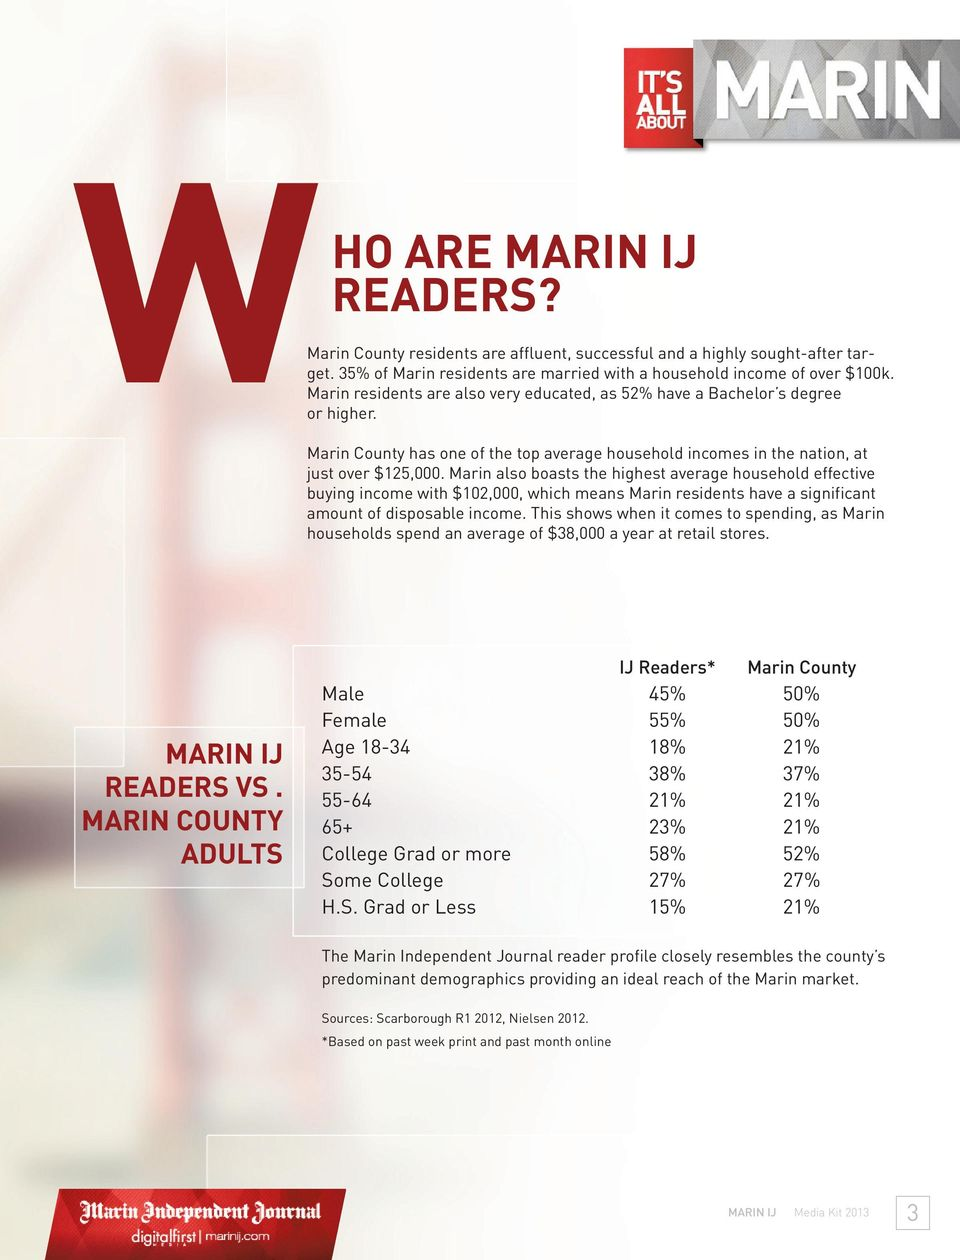 Marin also boasts the highest average household effective buying income with $102,000, which means Marin residents have a significant amount of disposable income.